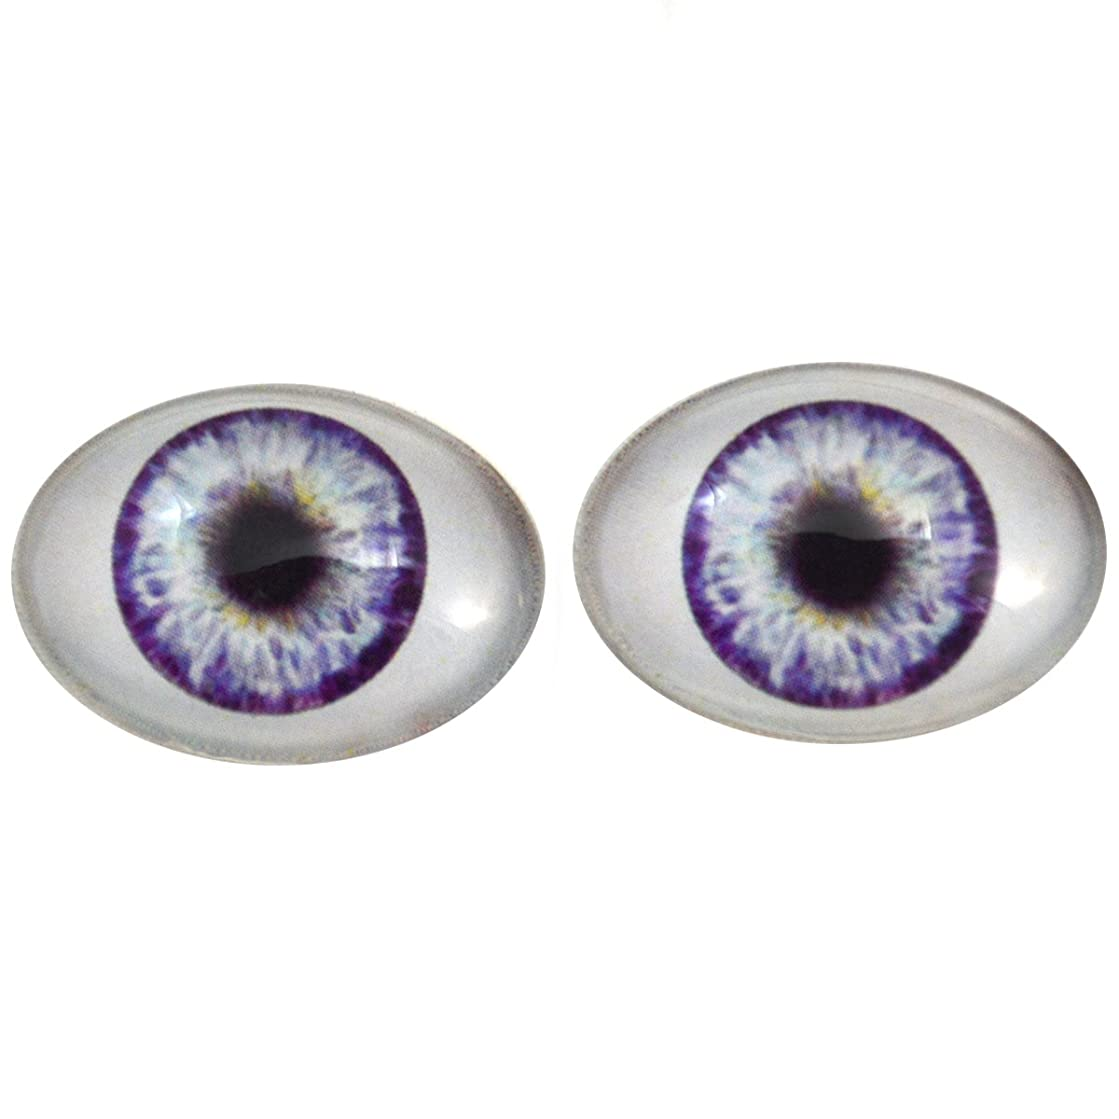 Megan's Beaded Designs Purple Doll Oval Glass Eyes Fantasy Taxidermy Art Doll Making or Jewelry Crafts Set of 2 (30mm x 40mm)